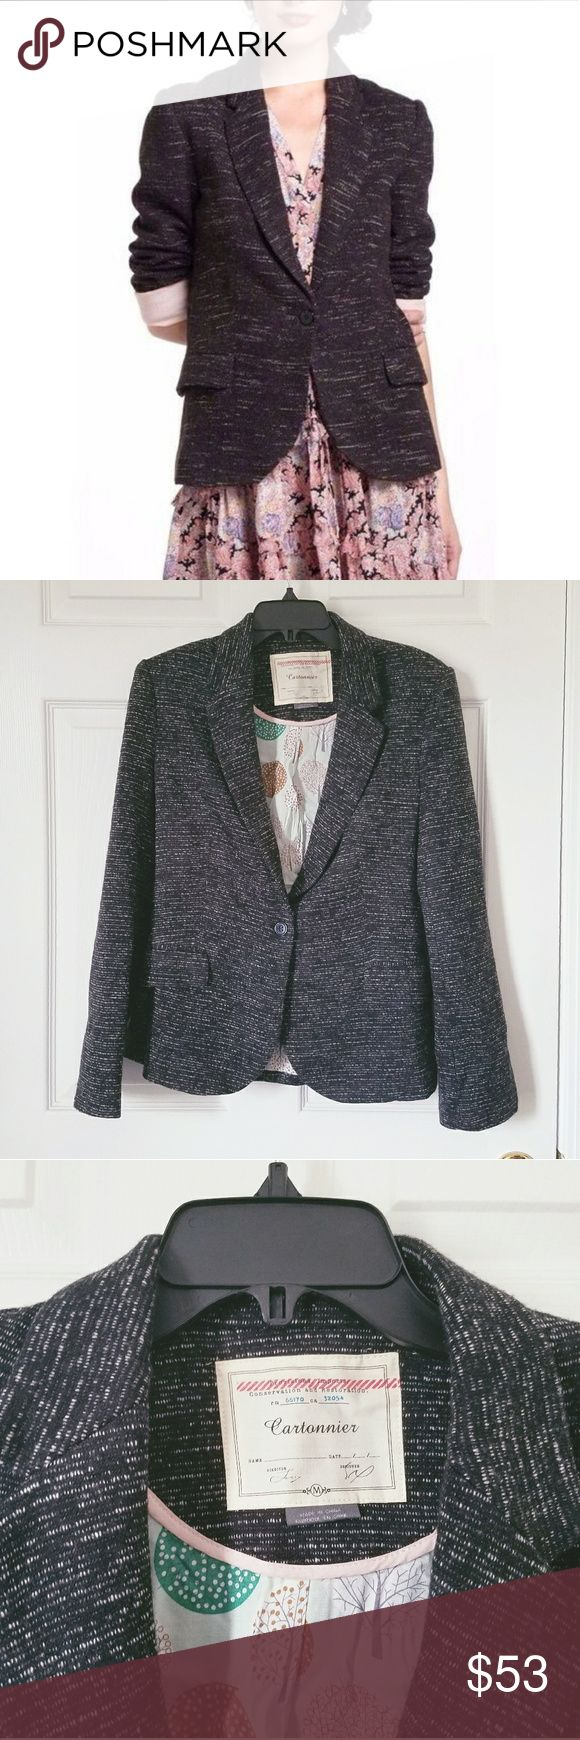 CARTONNIER Dashes Knit Blazer in Gray M RN# 66170 CA# 32054  Dashes blazer in the web exclusive gray.  White Noise look with mint pastel nature lining in the core and pale pink lining in the sleeves.  No flaws.  Cartonnier is stocked by Antropologie.   Size M.  +Open to offers  +300+ item closet to shop  +No Trades  +Price drops weekly Anthropologie Jackets & Coats Blazers